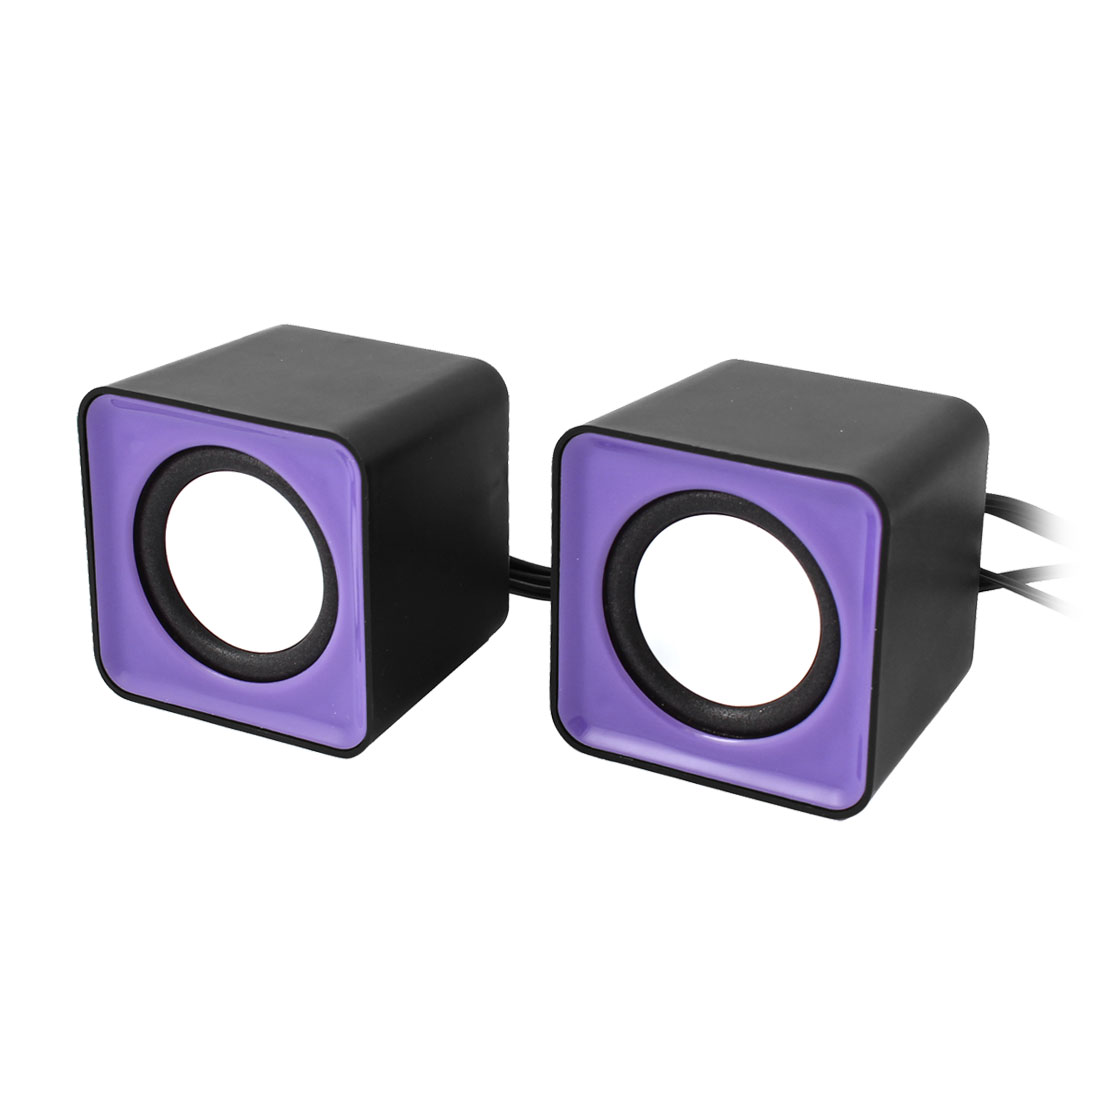 Pair Black Purple USB 2.0 3.5mm Stereo Mini Multimedia Speaker for Laptop PC